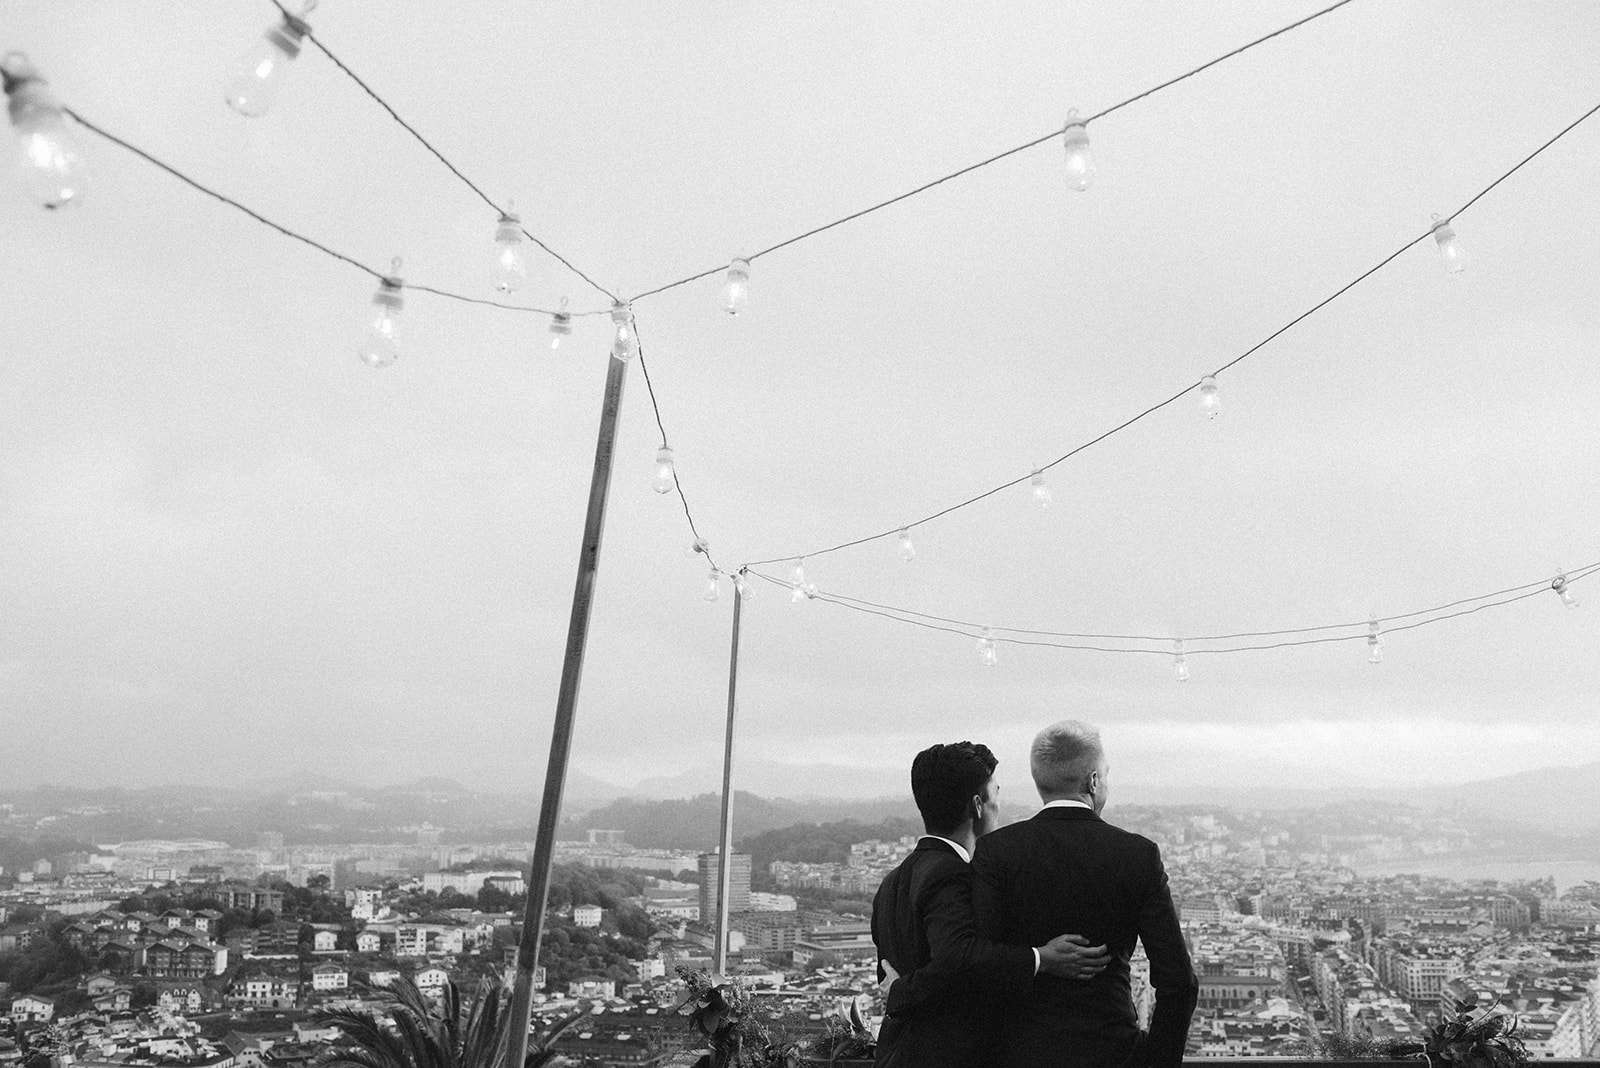 The grooms look out at the view